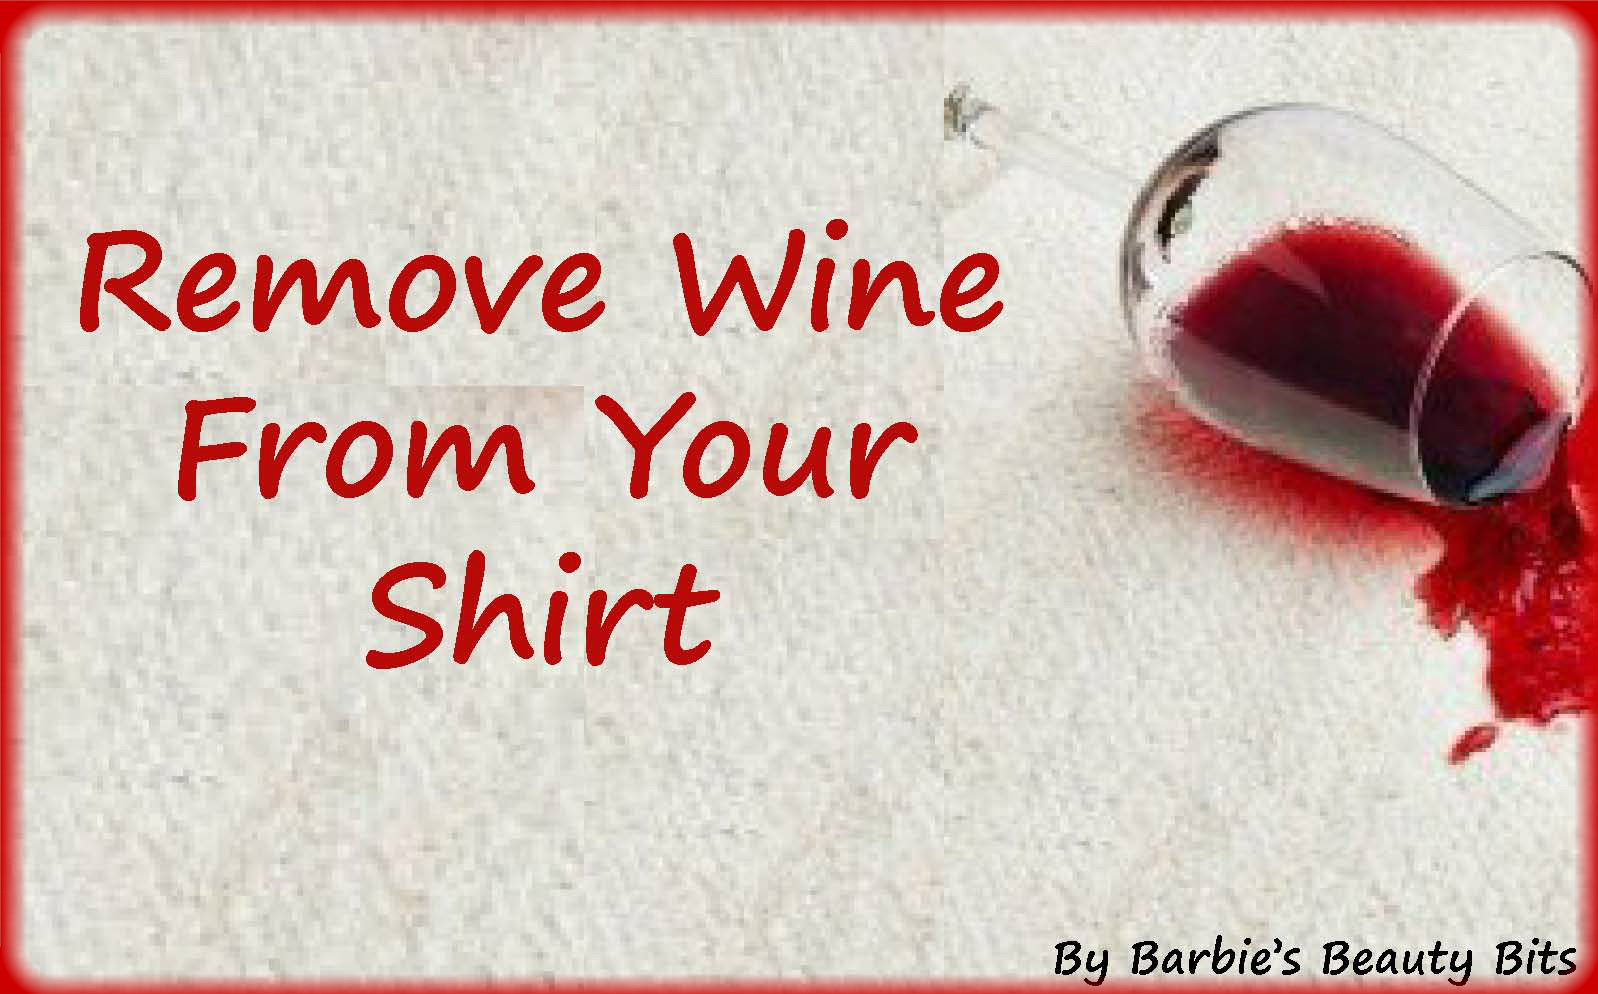 Great uses for lemons barbie 39 s beauty bits for How to remove red wine stain from cotton shirt